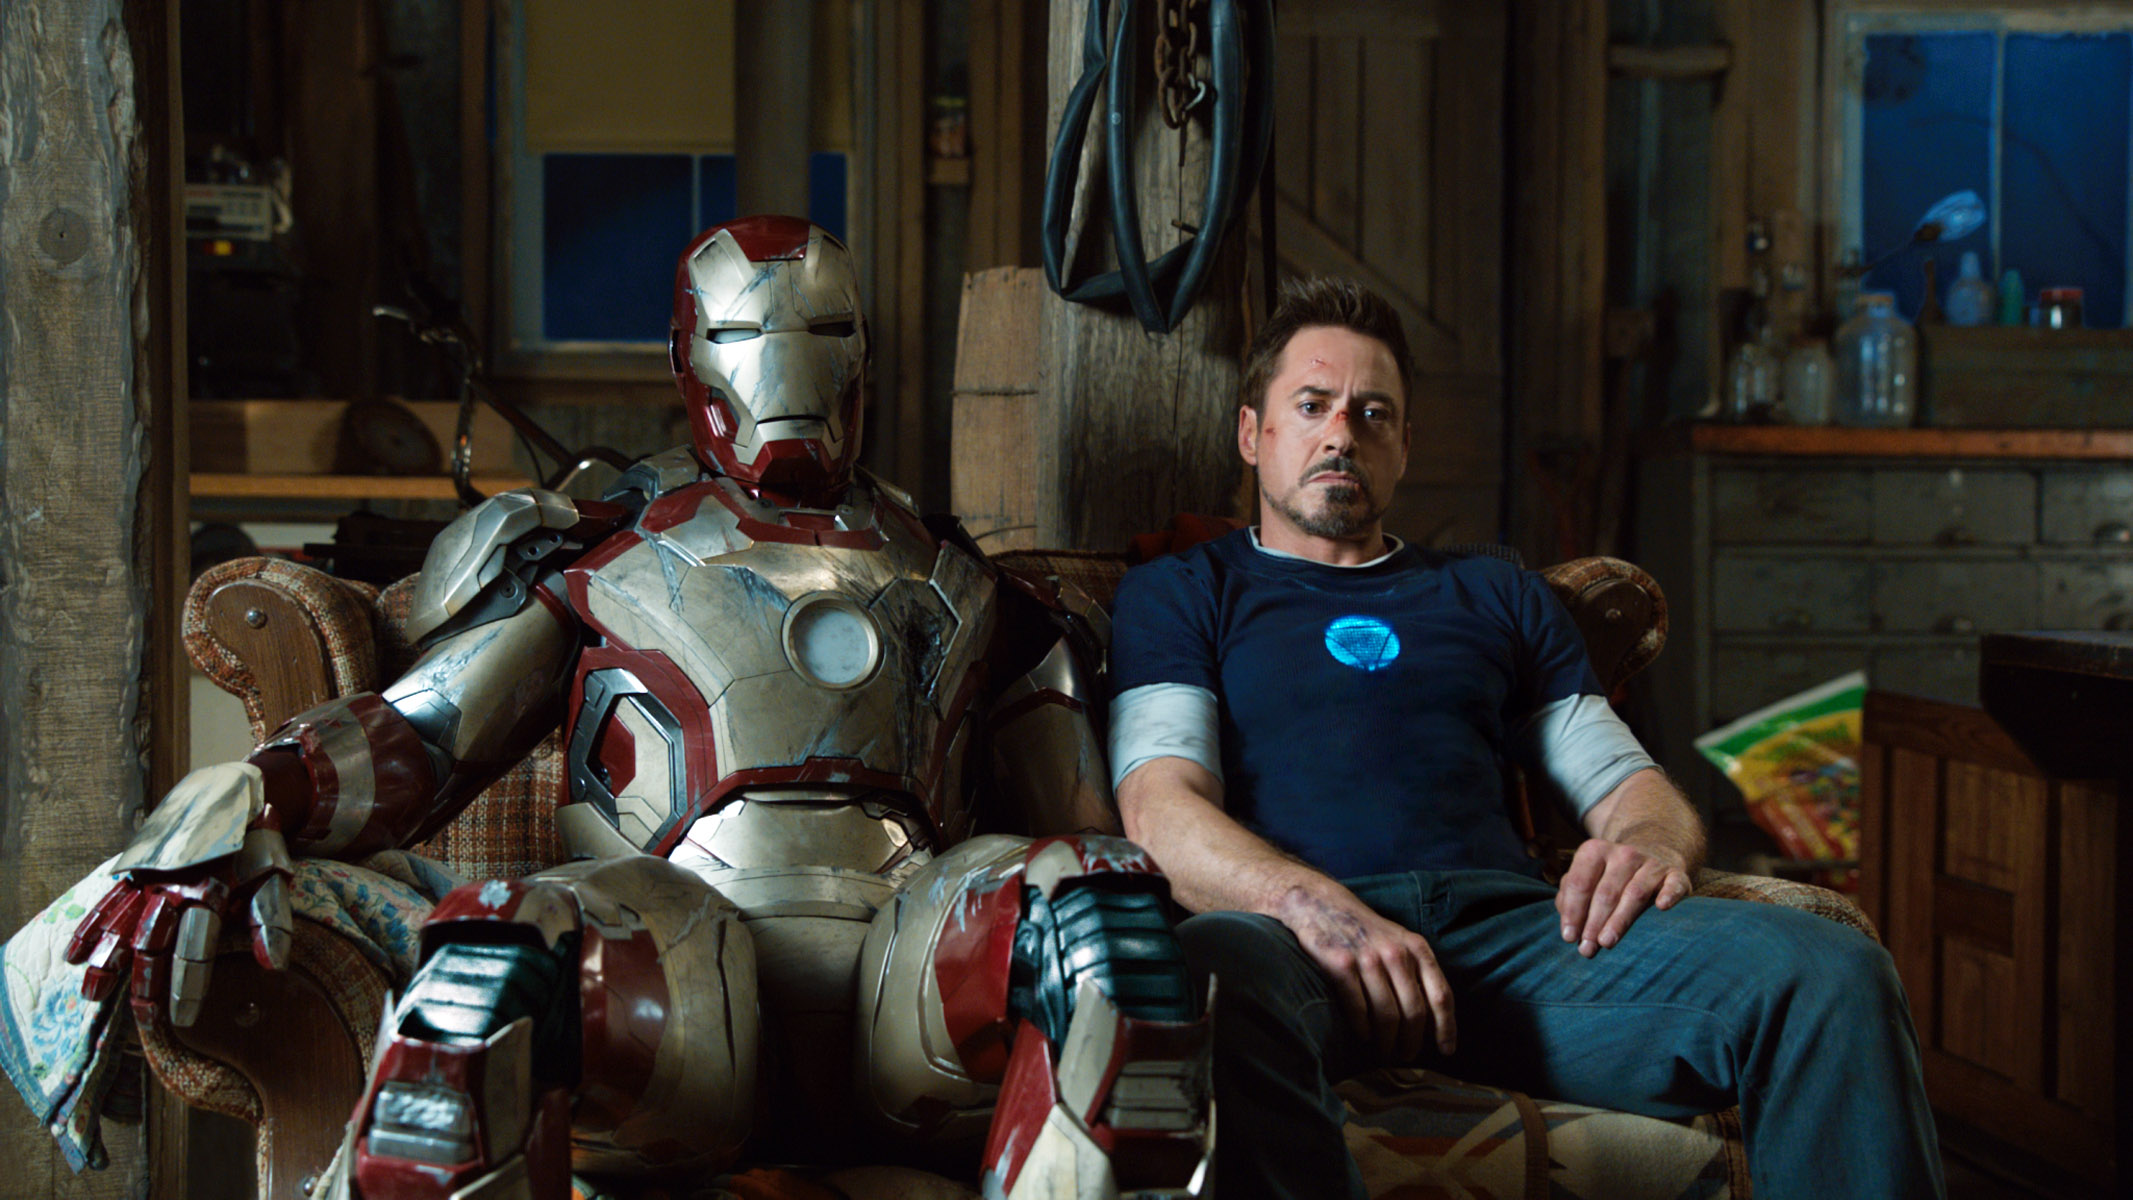 How to Watch Every Marvel Movie Before Avengers: Endgame | Time